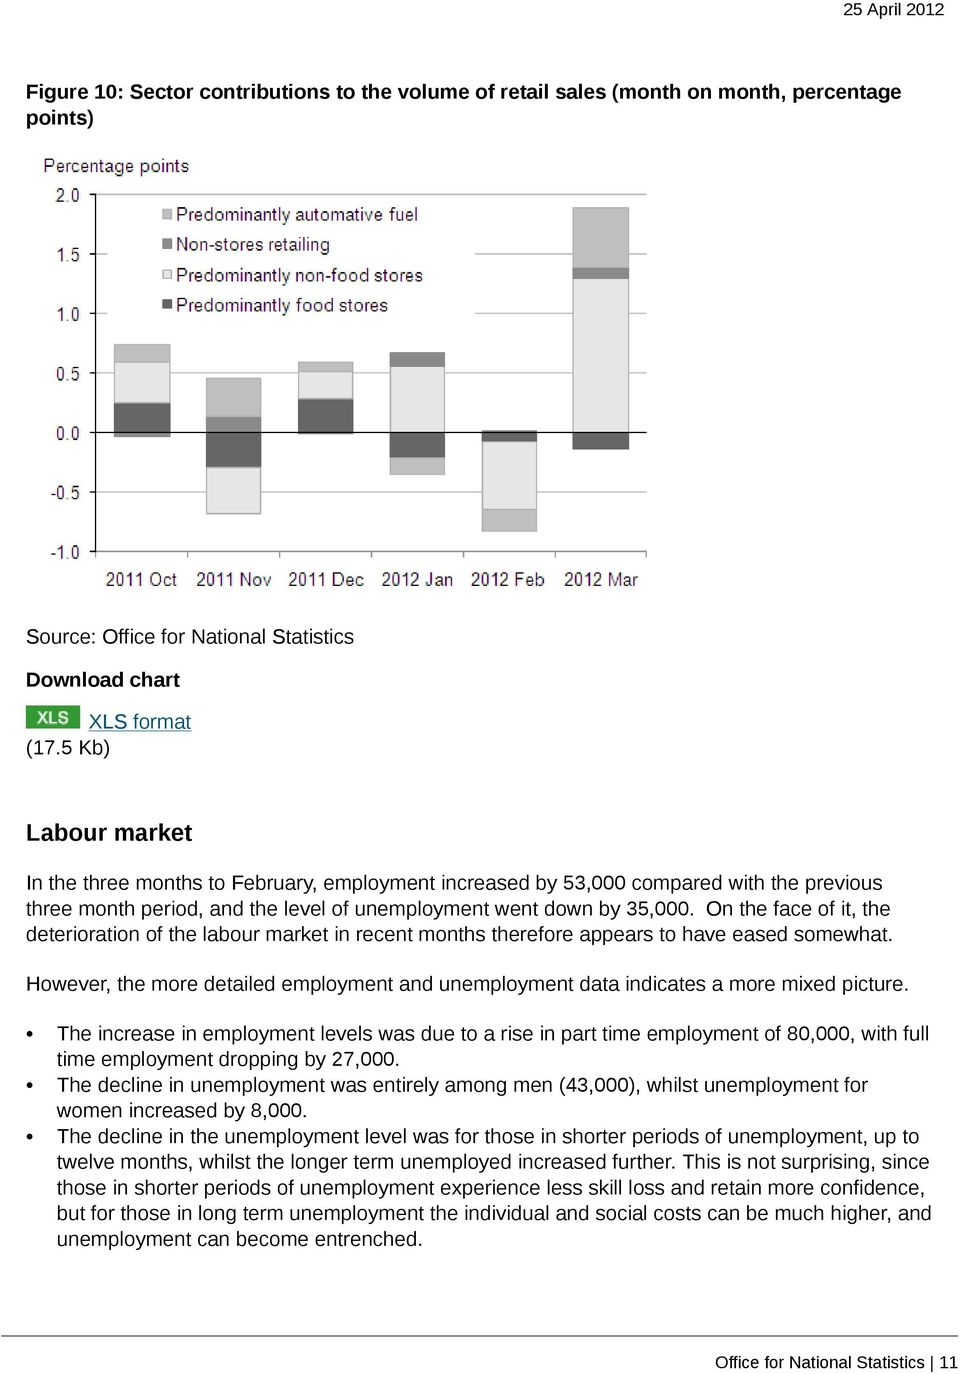 On the face of it, the deterioration of the labour market in recent months therefore appears to have eased somewhat.